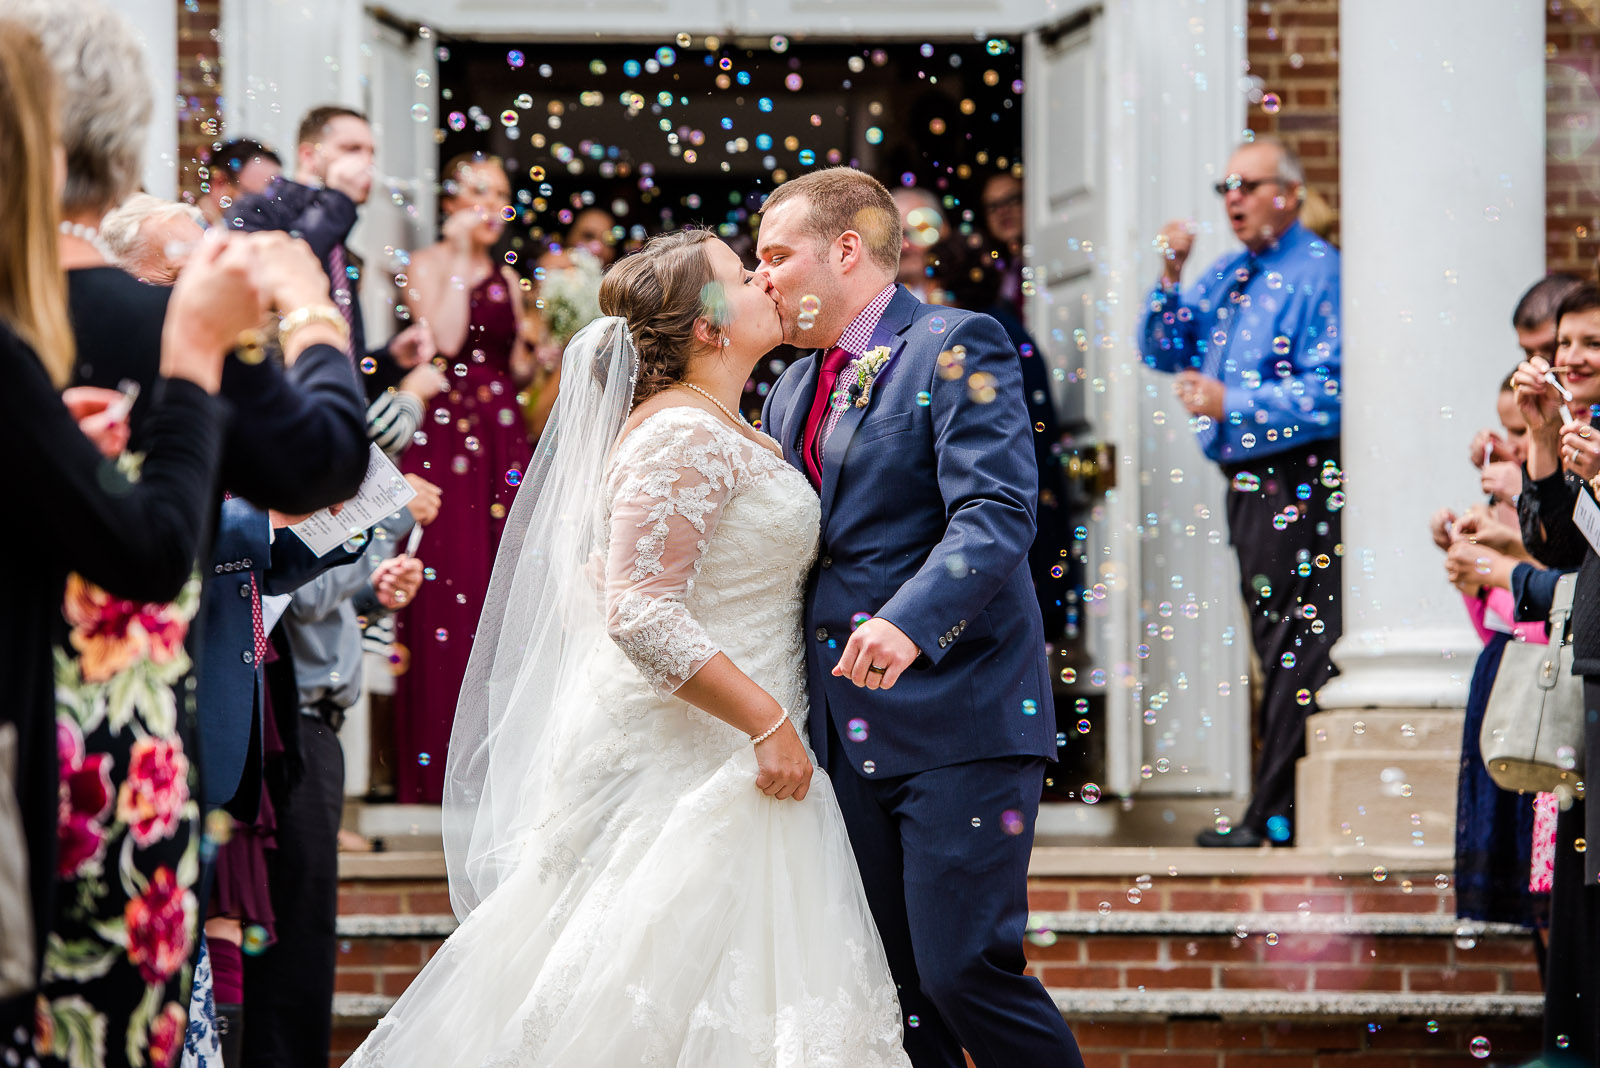 Eric_and_Christy_Photography_Blog_Wedding_Stacey_Geoff-21